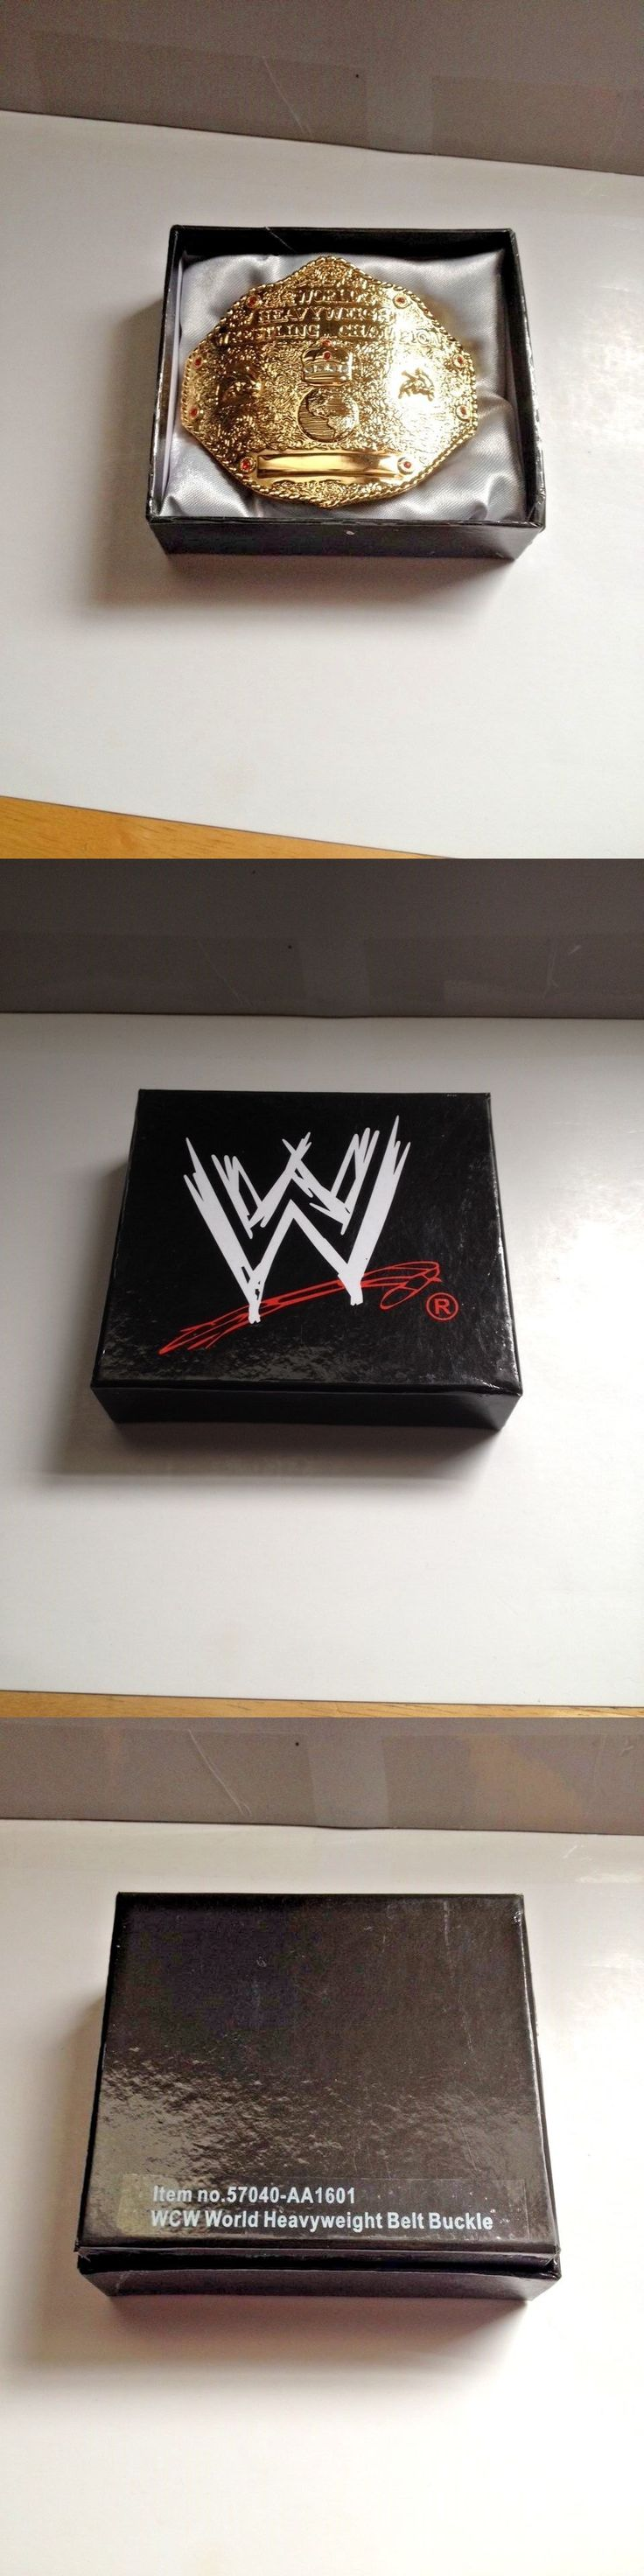 Wrestling 2902: Wcw World Heavyweight Championship Licensed Metal Belt Buckle In Gift Box -> BUY IT NOW ONLY: $34.95 on eBay!